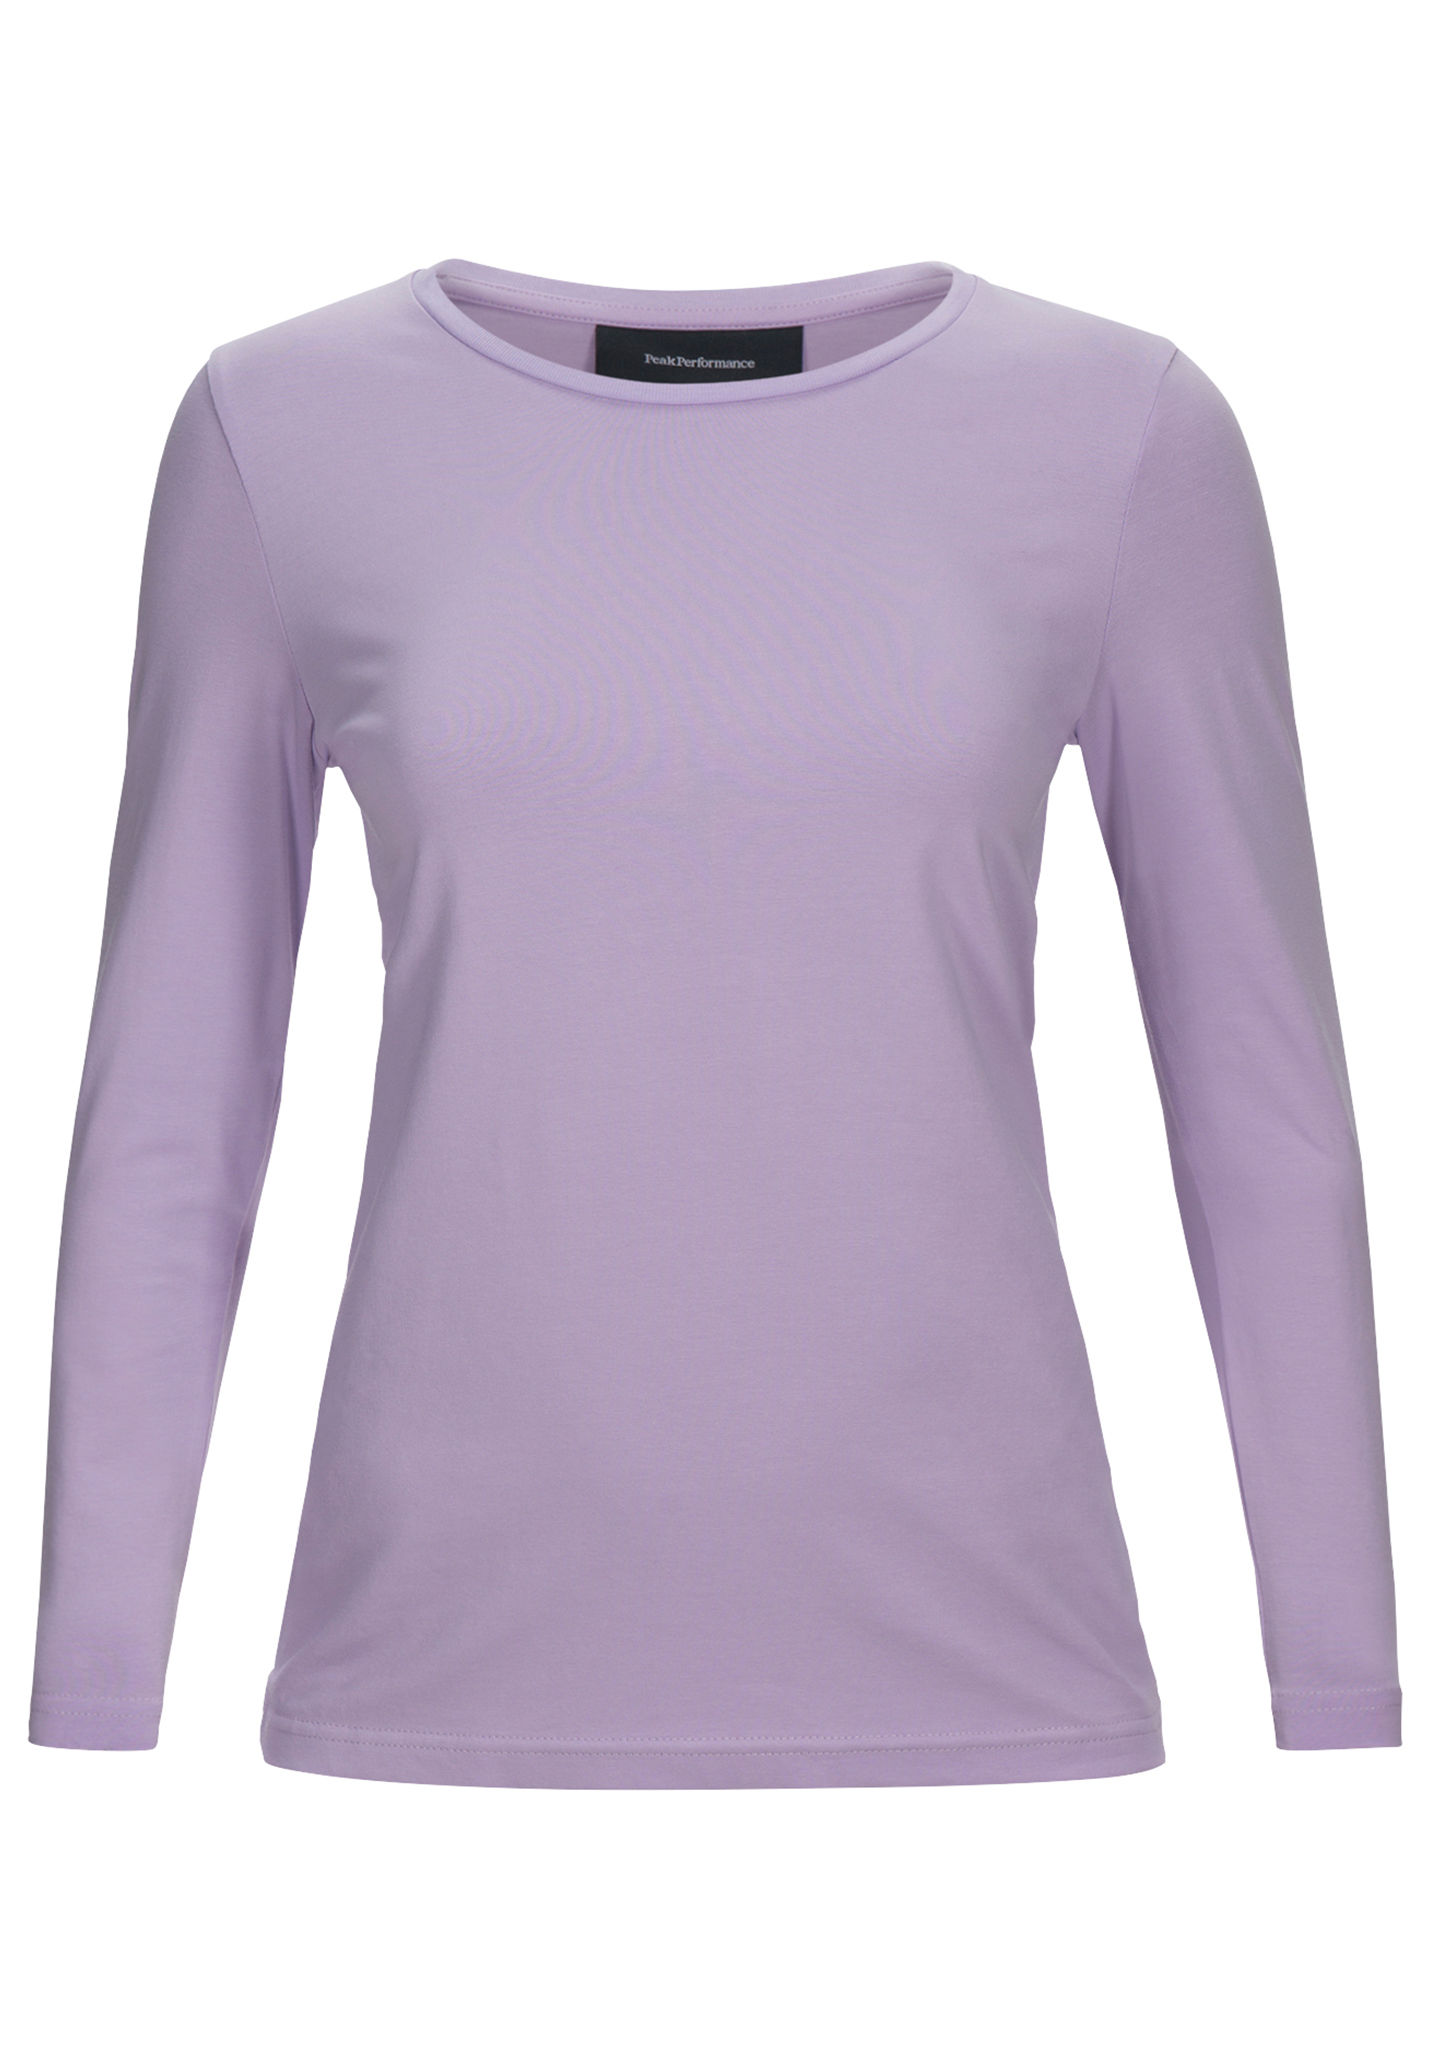 6e259692 PEAK PERFORMANCE Logo - Long-sleeved Shirt for Women - Purple - Planet  Sports